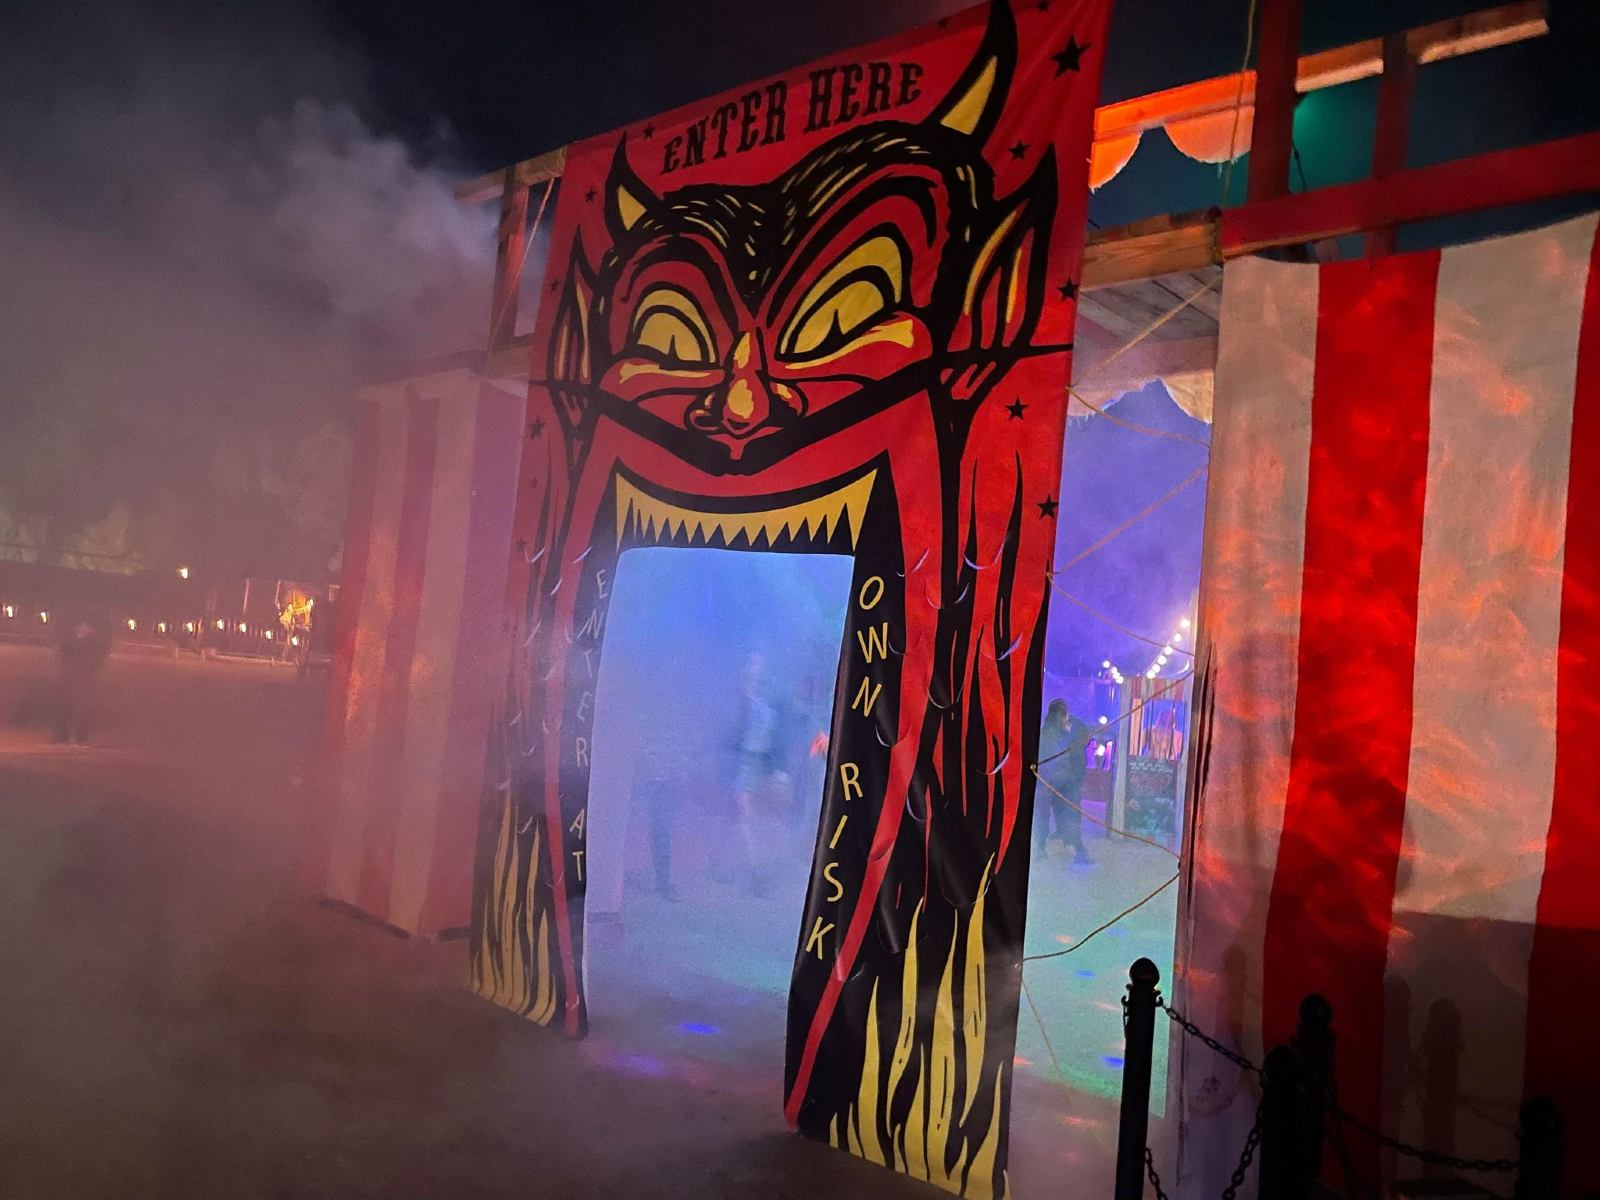 The Bloodshed Brothers - Temecula Terror - Haunted House - Temecula CA